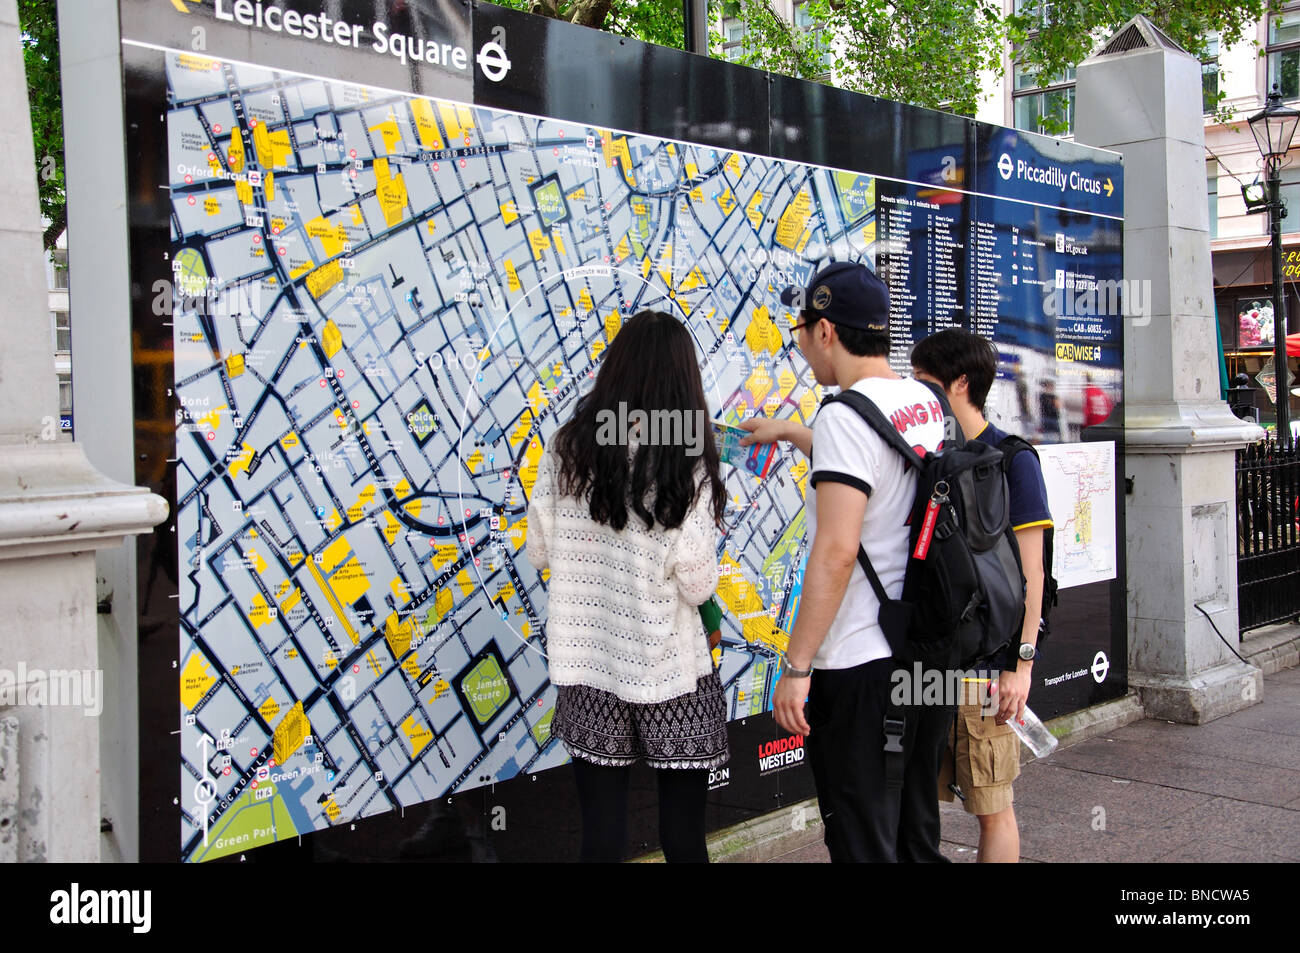 London Tourist Information Map.London Tourist Information Map Leicester Square West End The City